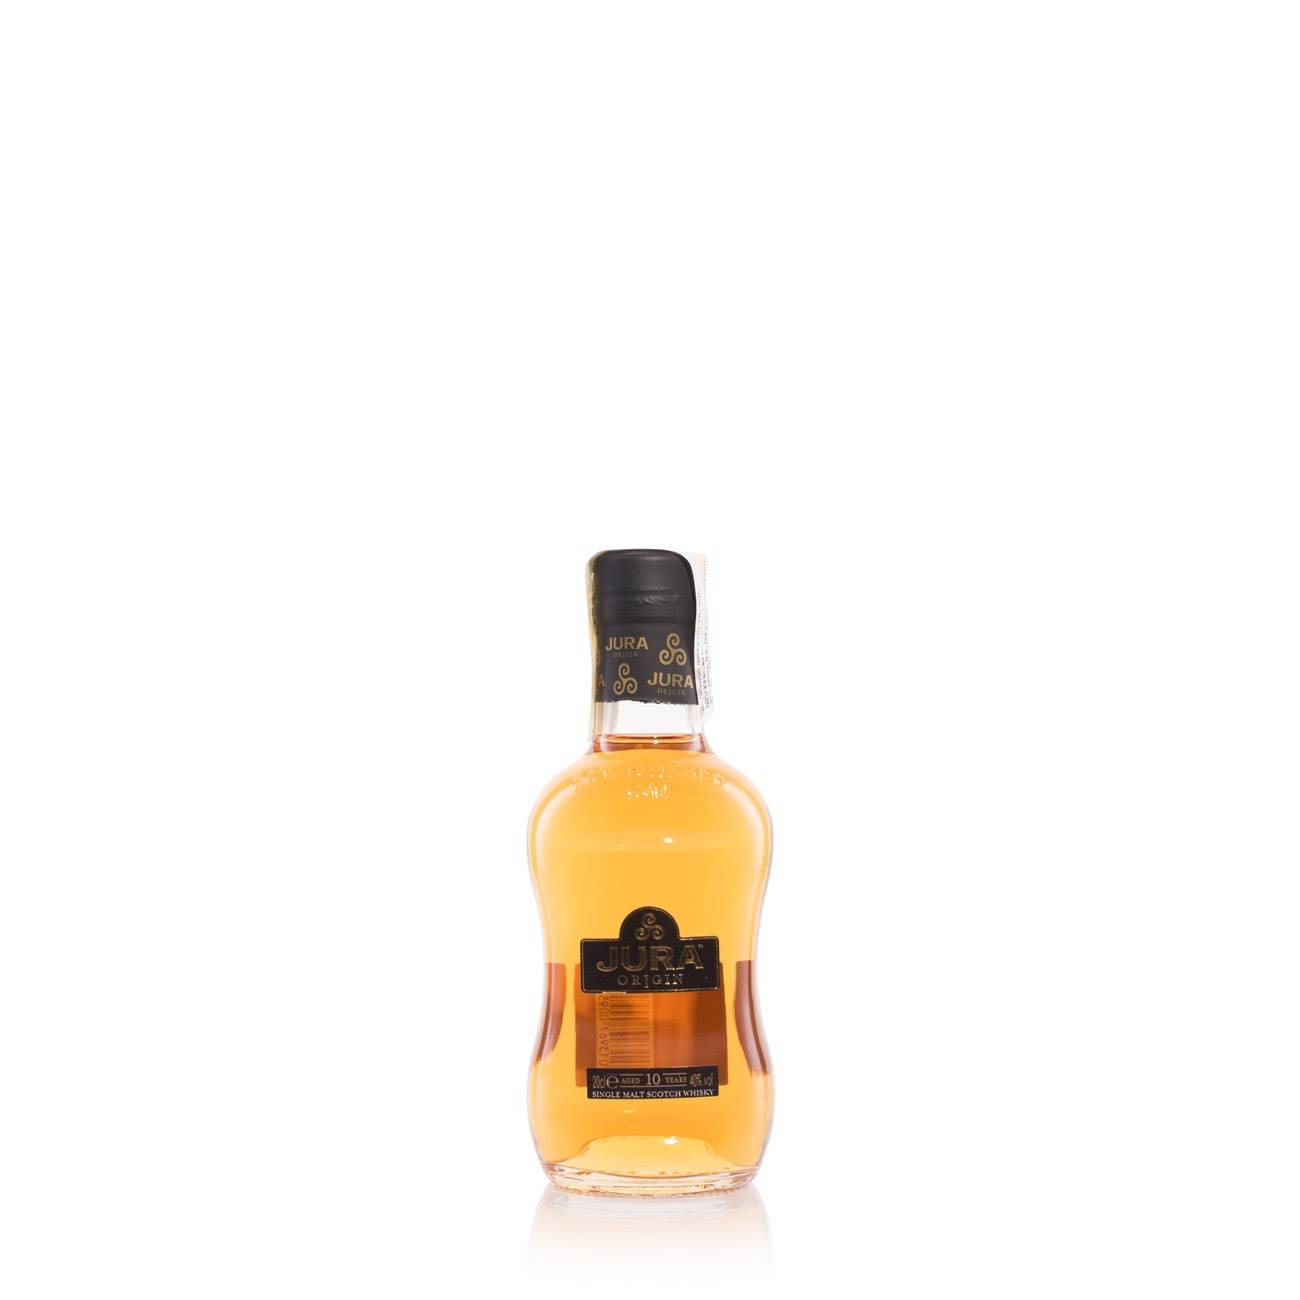 Jura Origin 10 Y 200 Ml de la Isle Of Jura